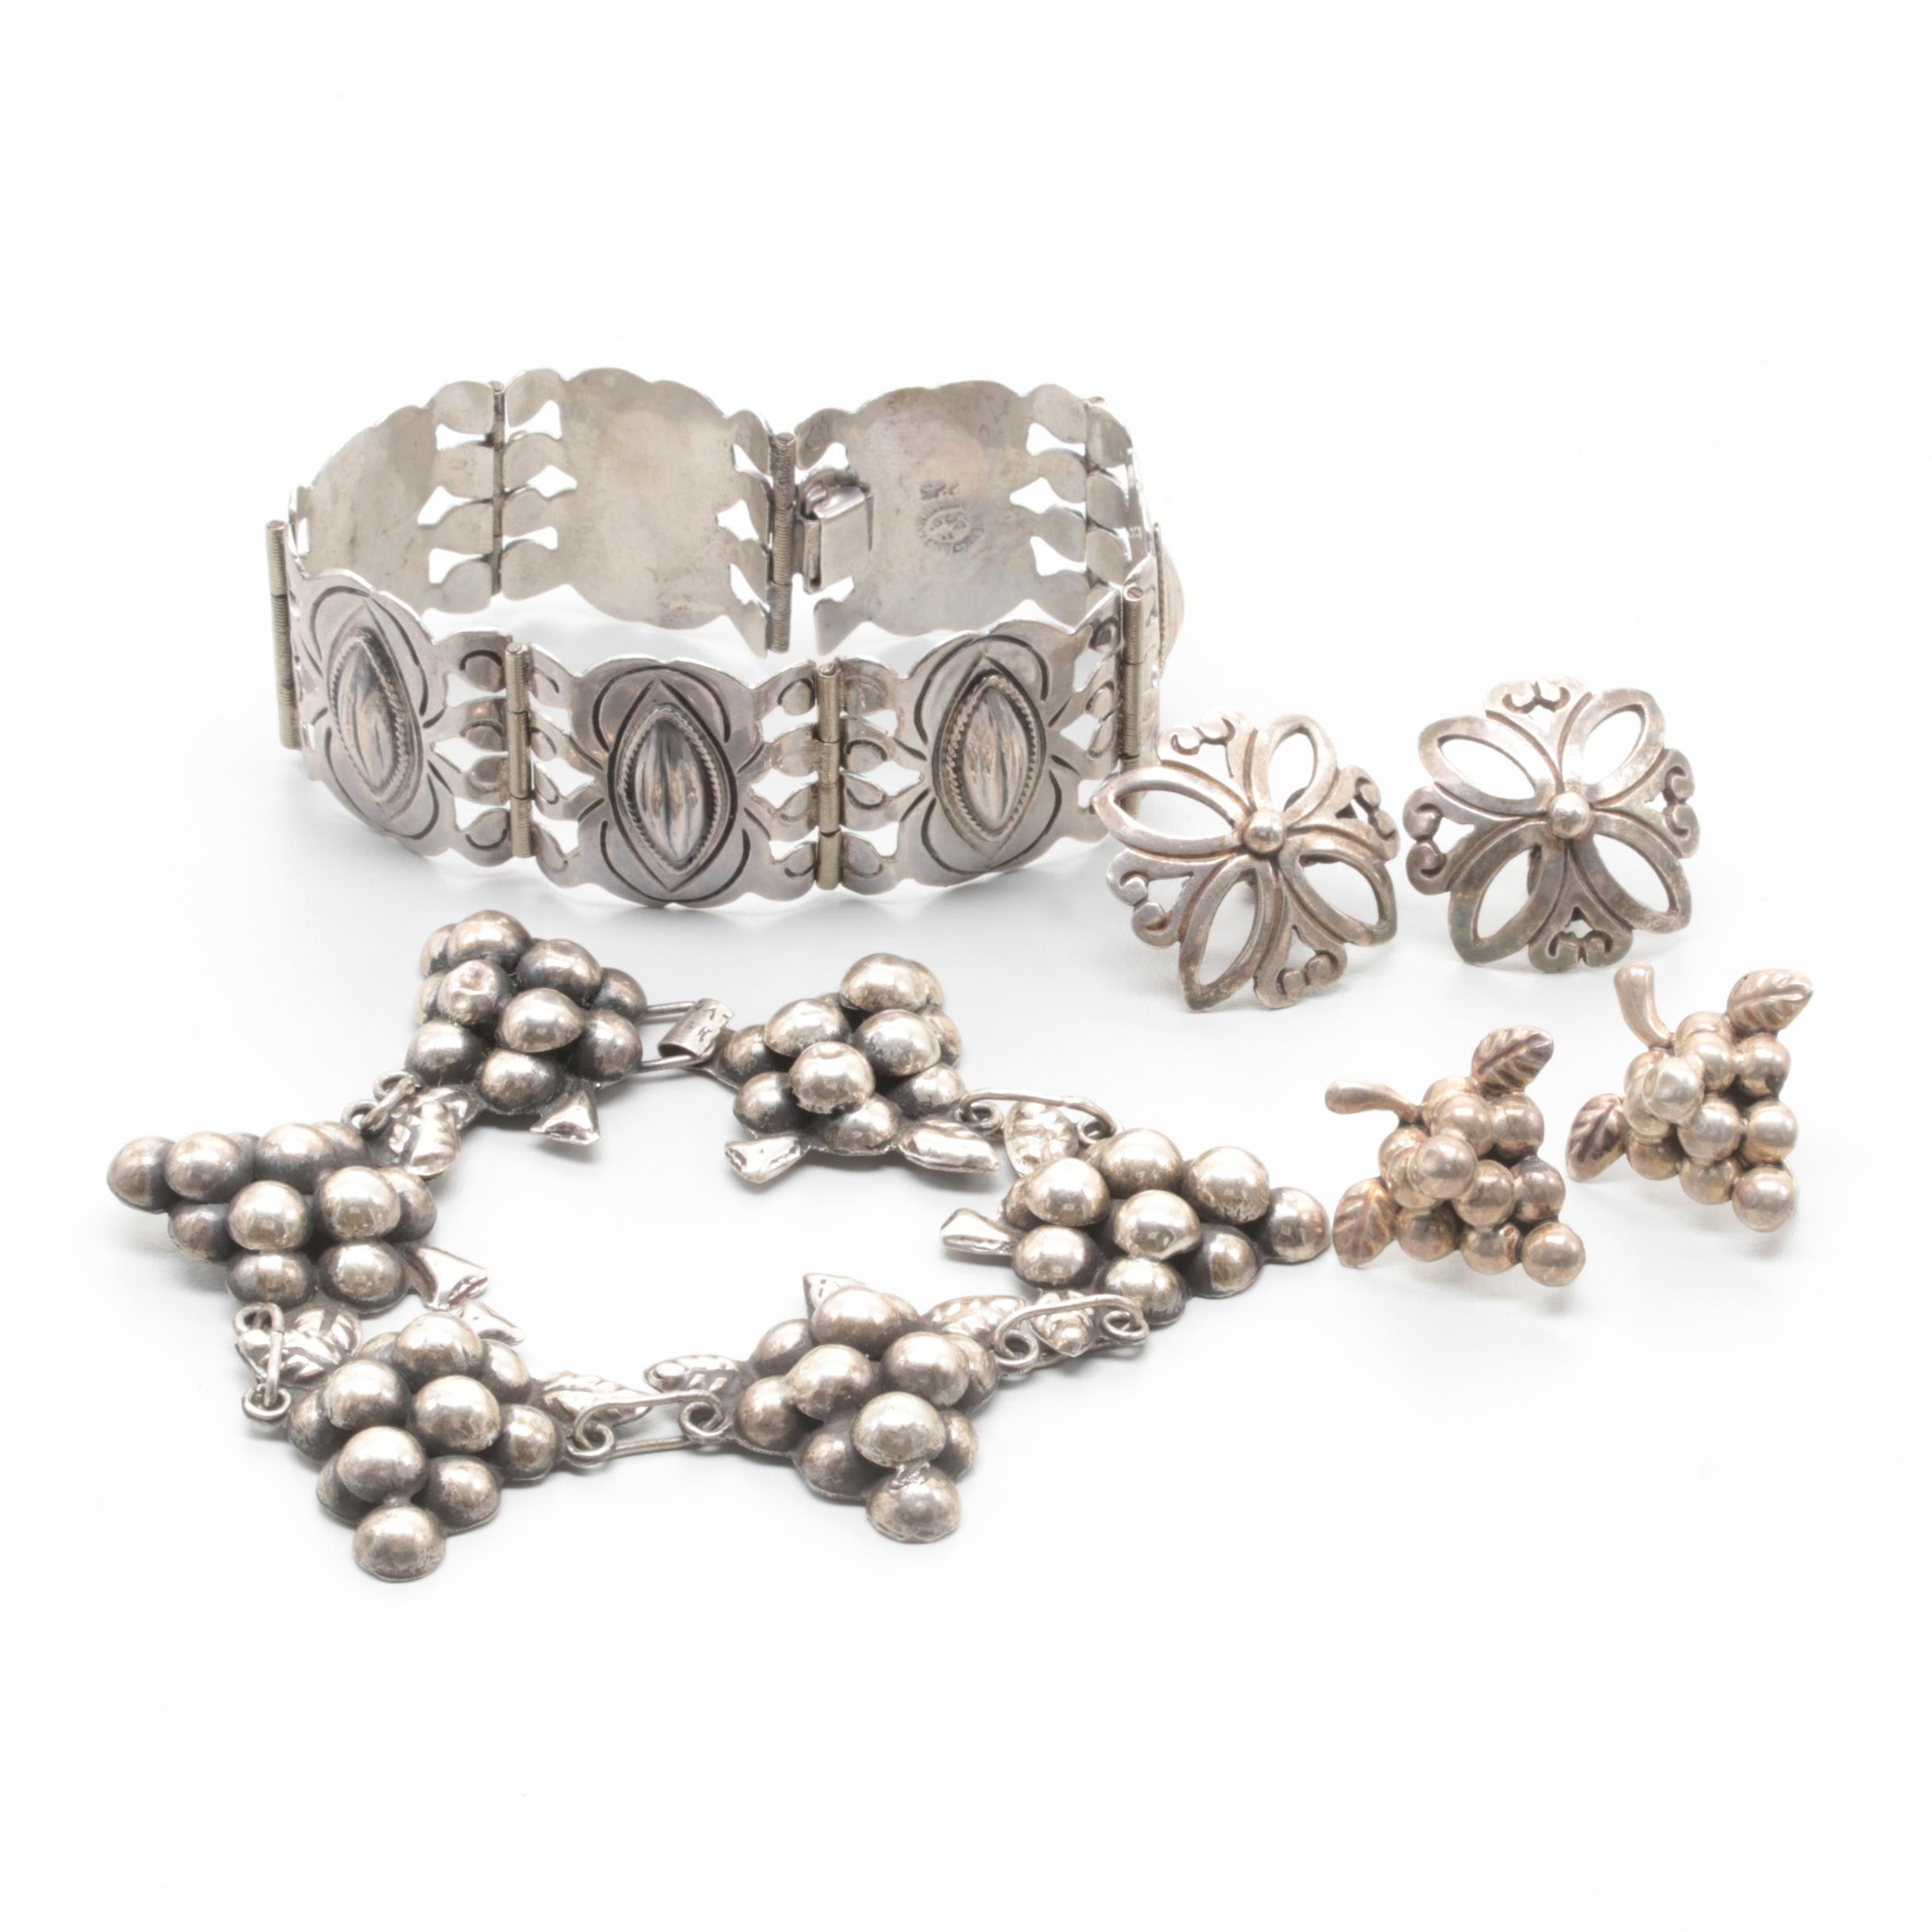 Sterling Silver Bracelets and Earrings Including Mexican Sterling